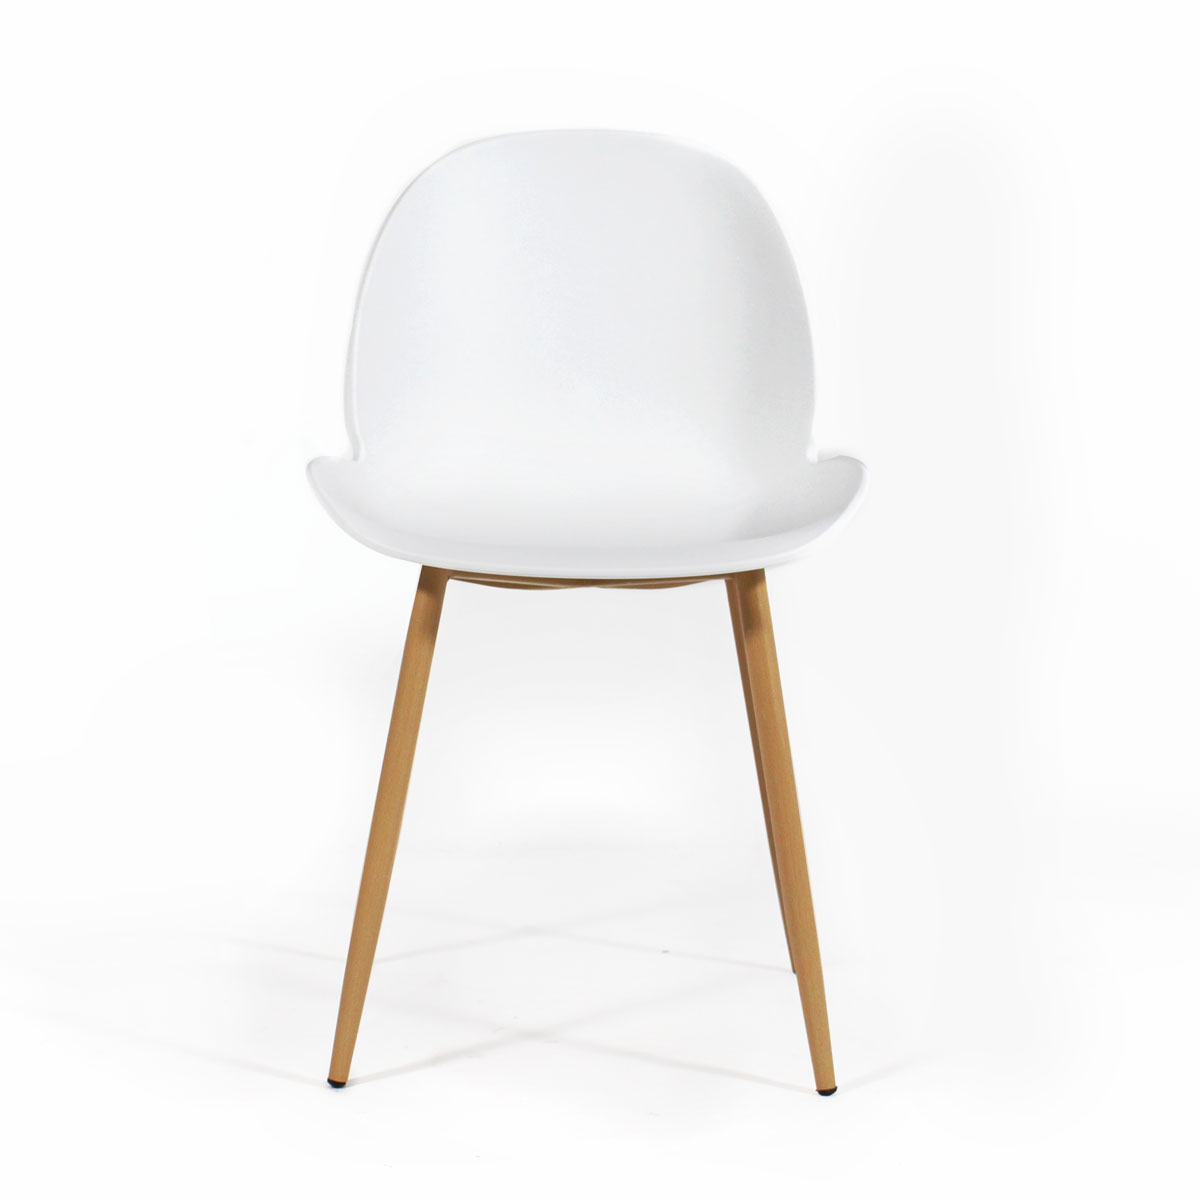 Chaise scandinave blanche assise originale